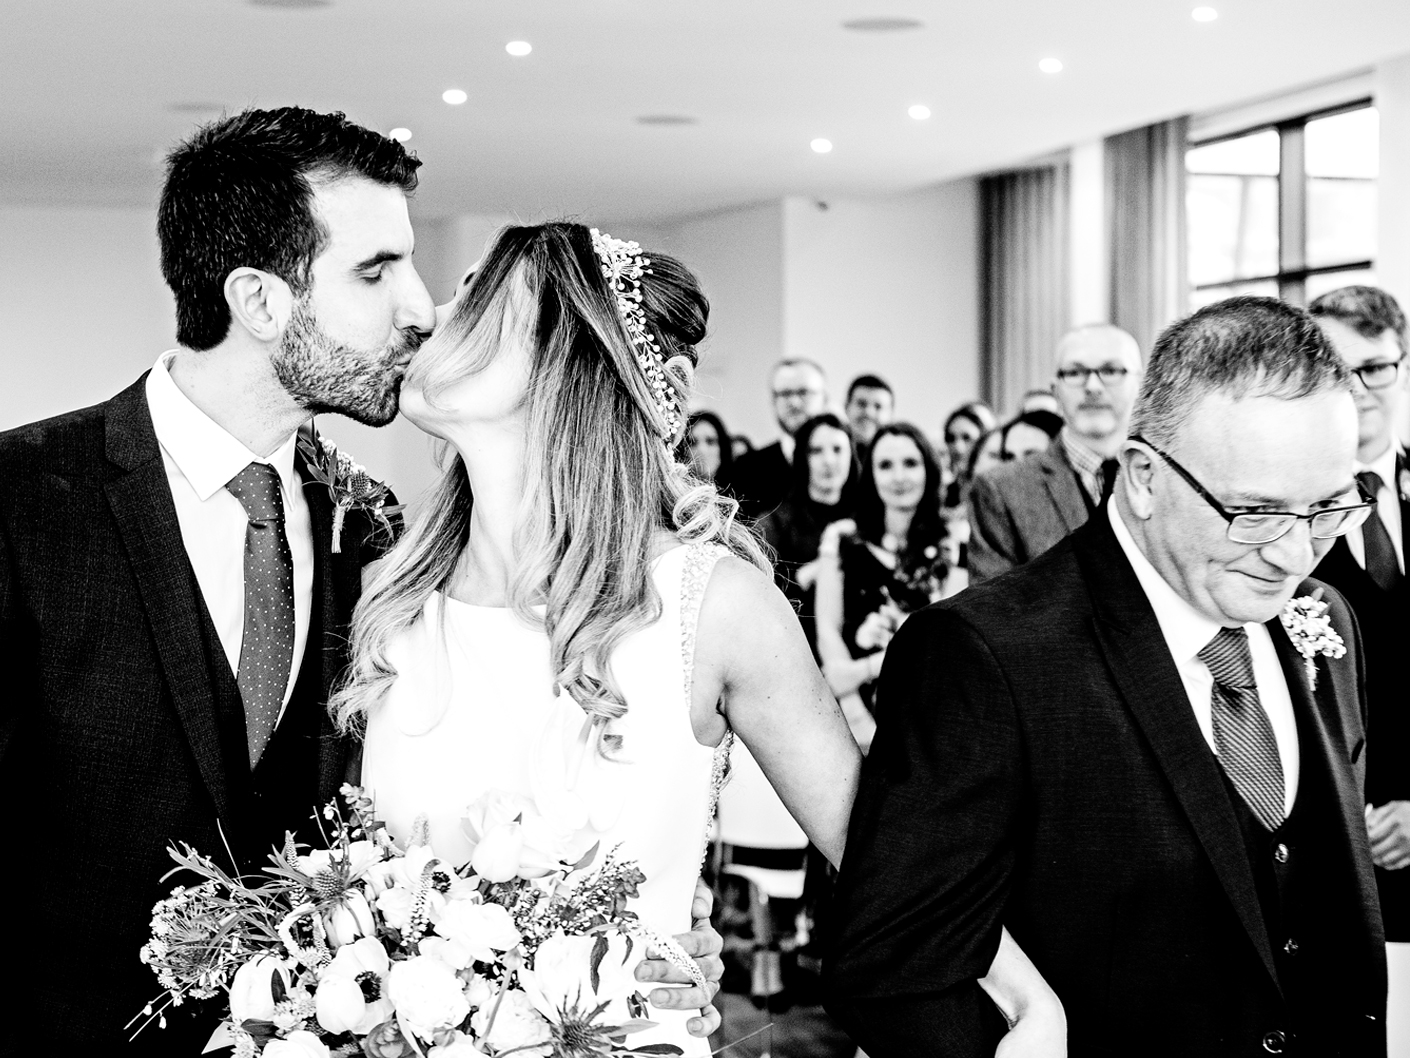 the-bride-and-groom-at-the-wedding-ceremony-in-liverpool